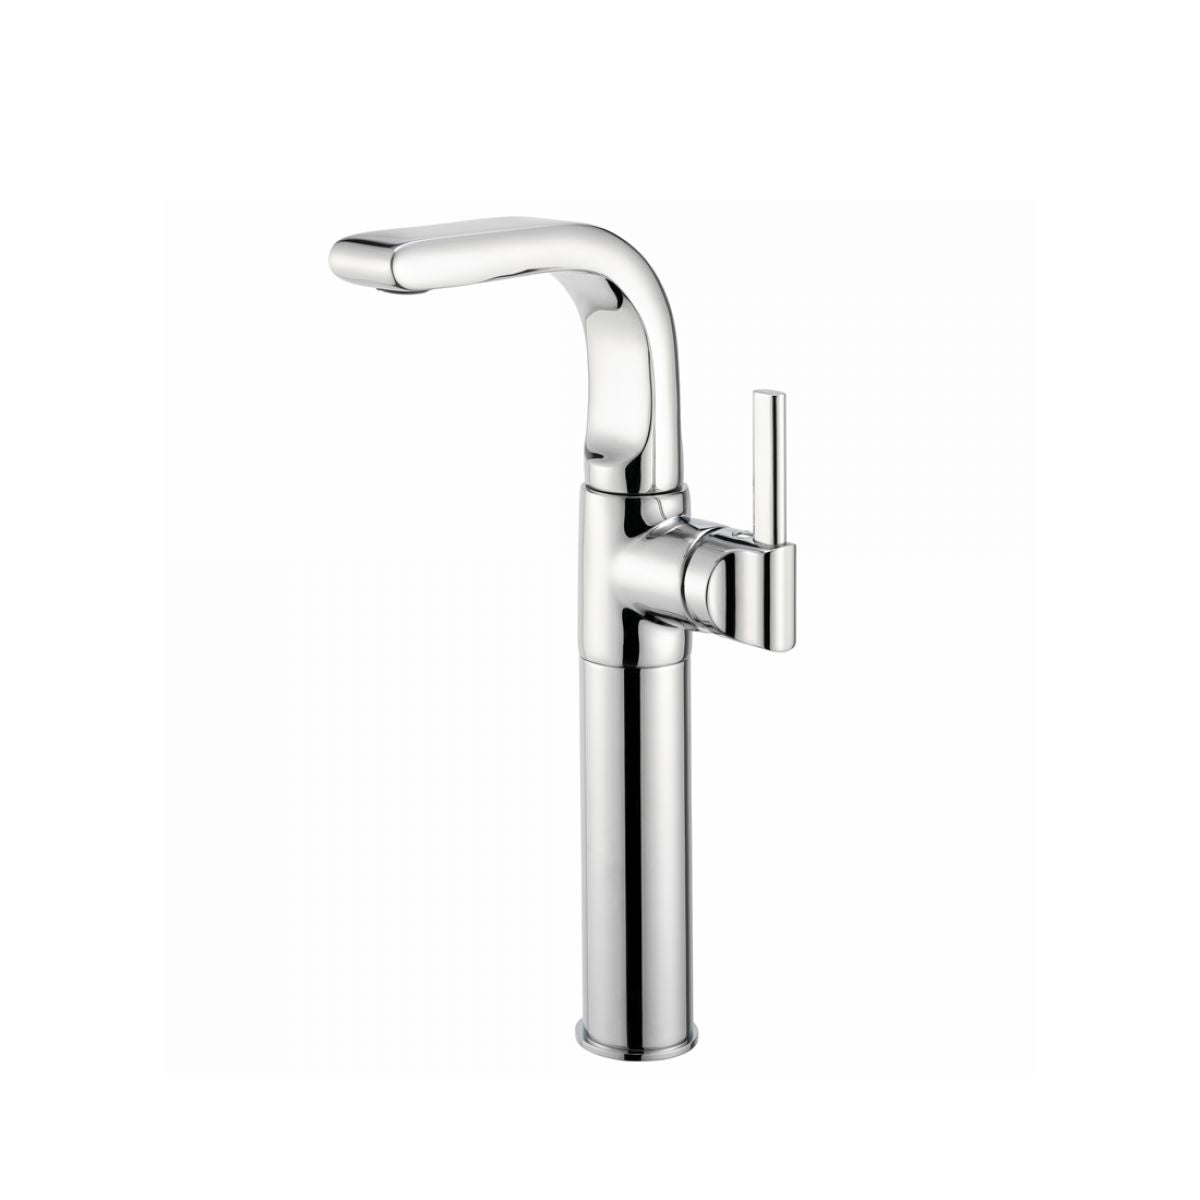 Panacea Tall Basin Mixer - blueskybathrooms